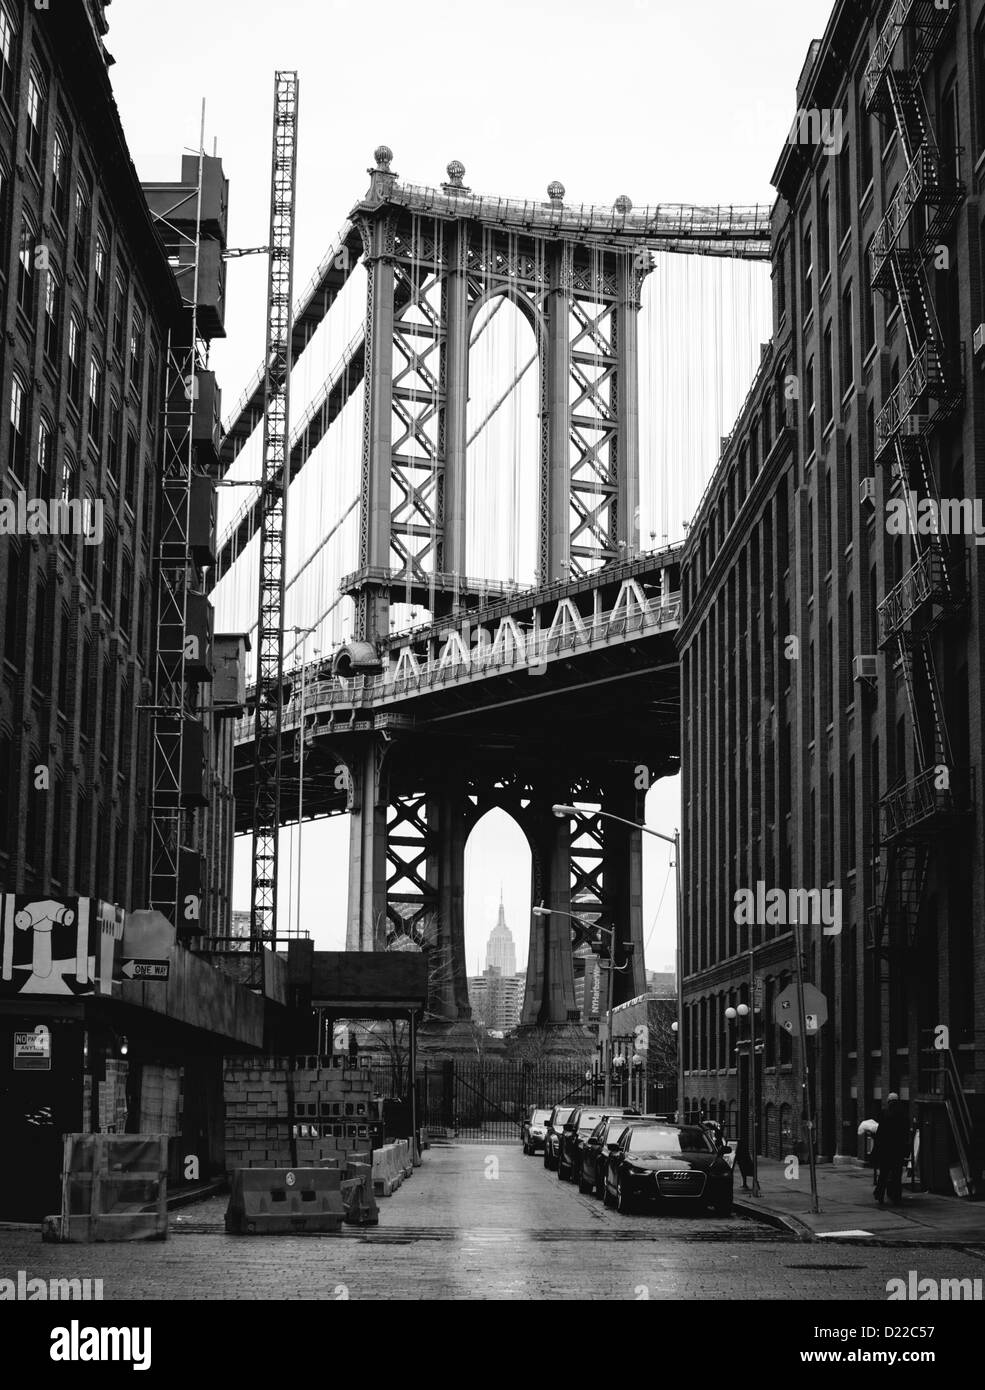 Manhattan Bridge from DUMBO, South Brooklyn. Famous Shot from Once Upon a Time in America--in Black and White. - Stock Image